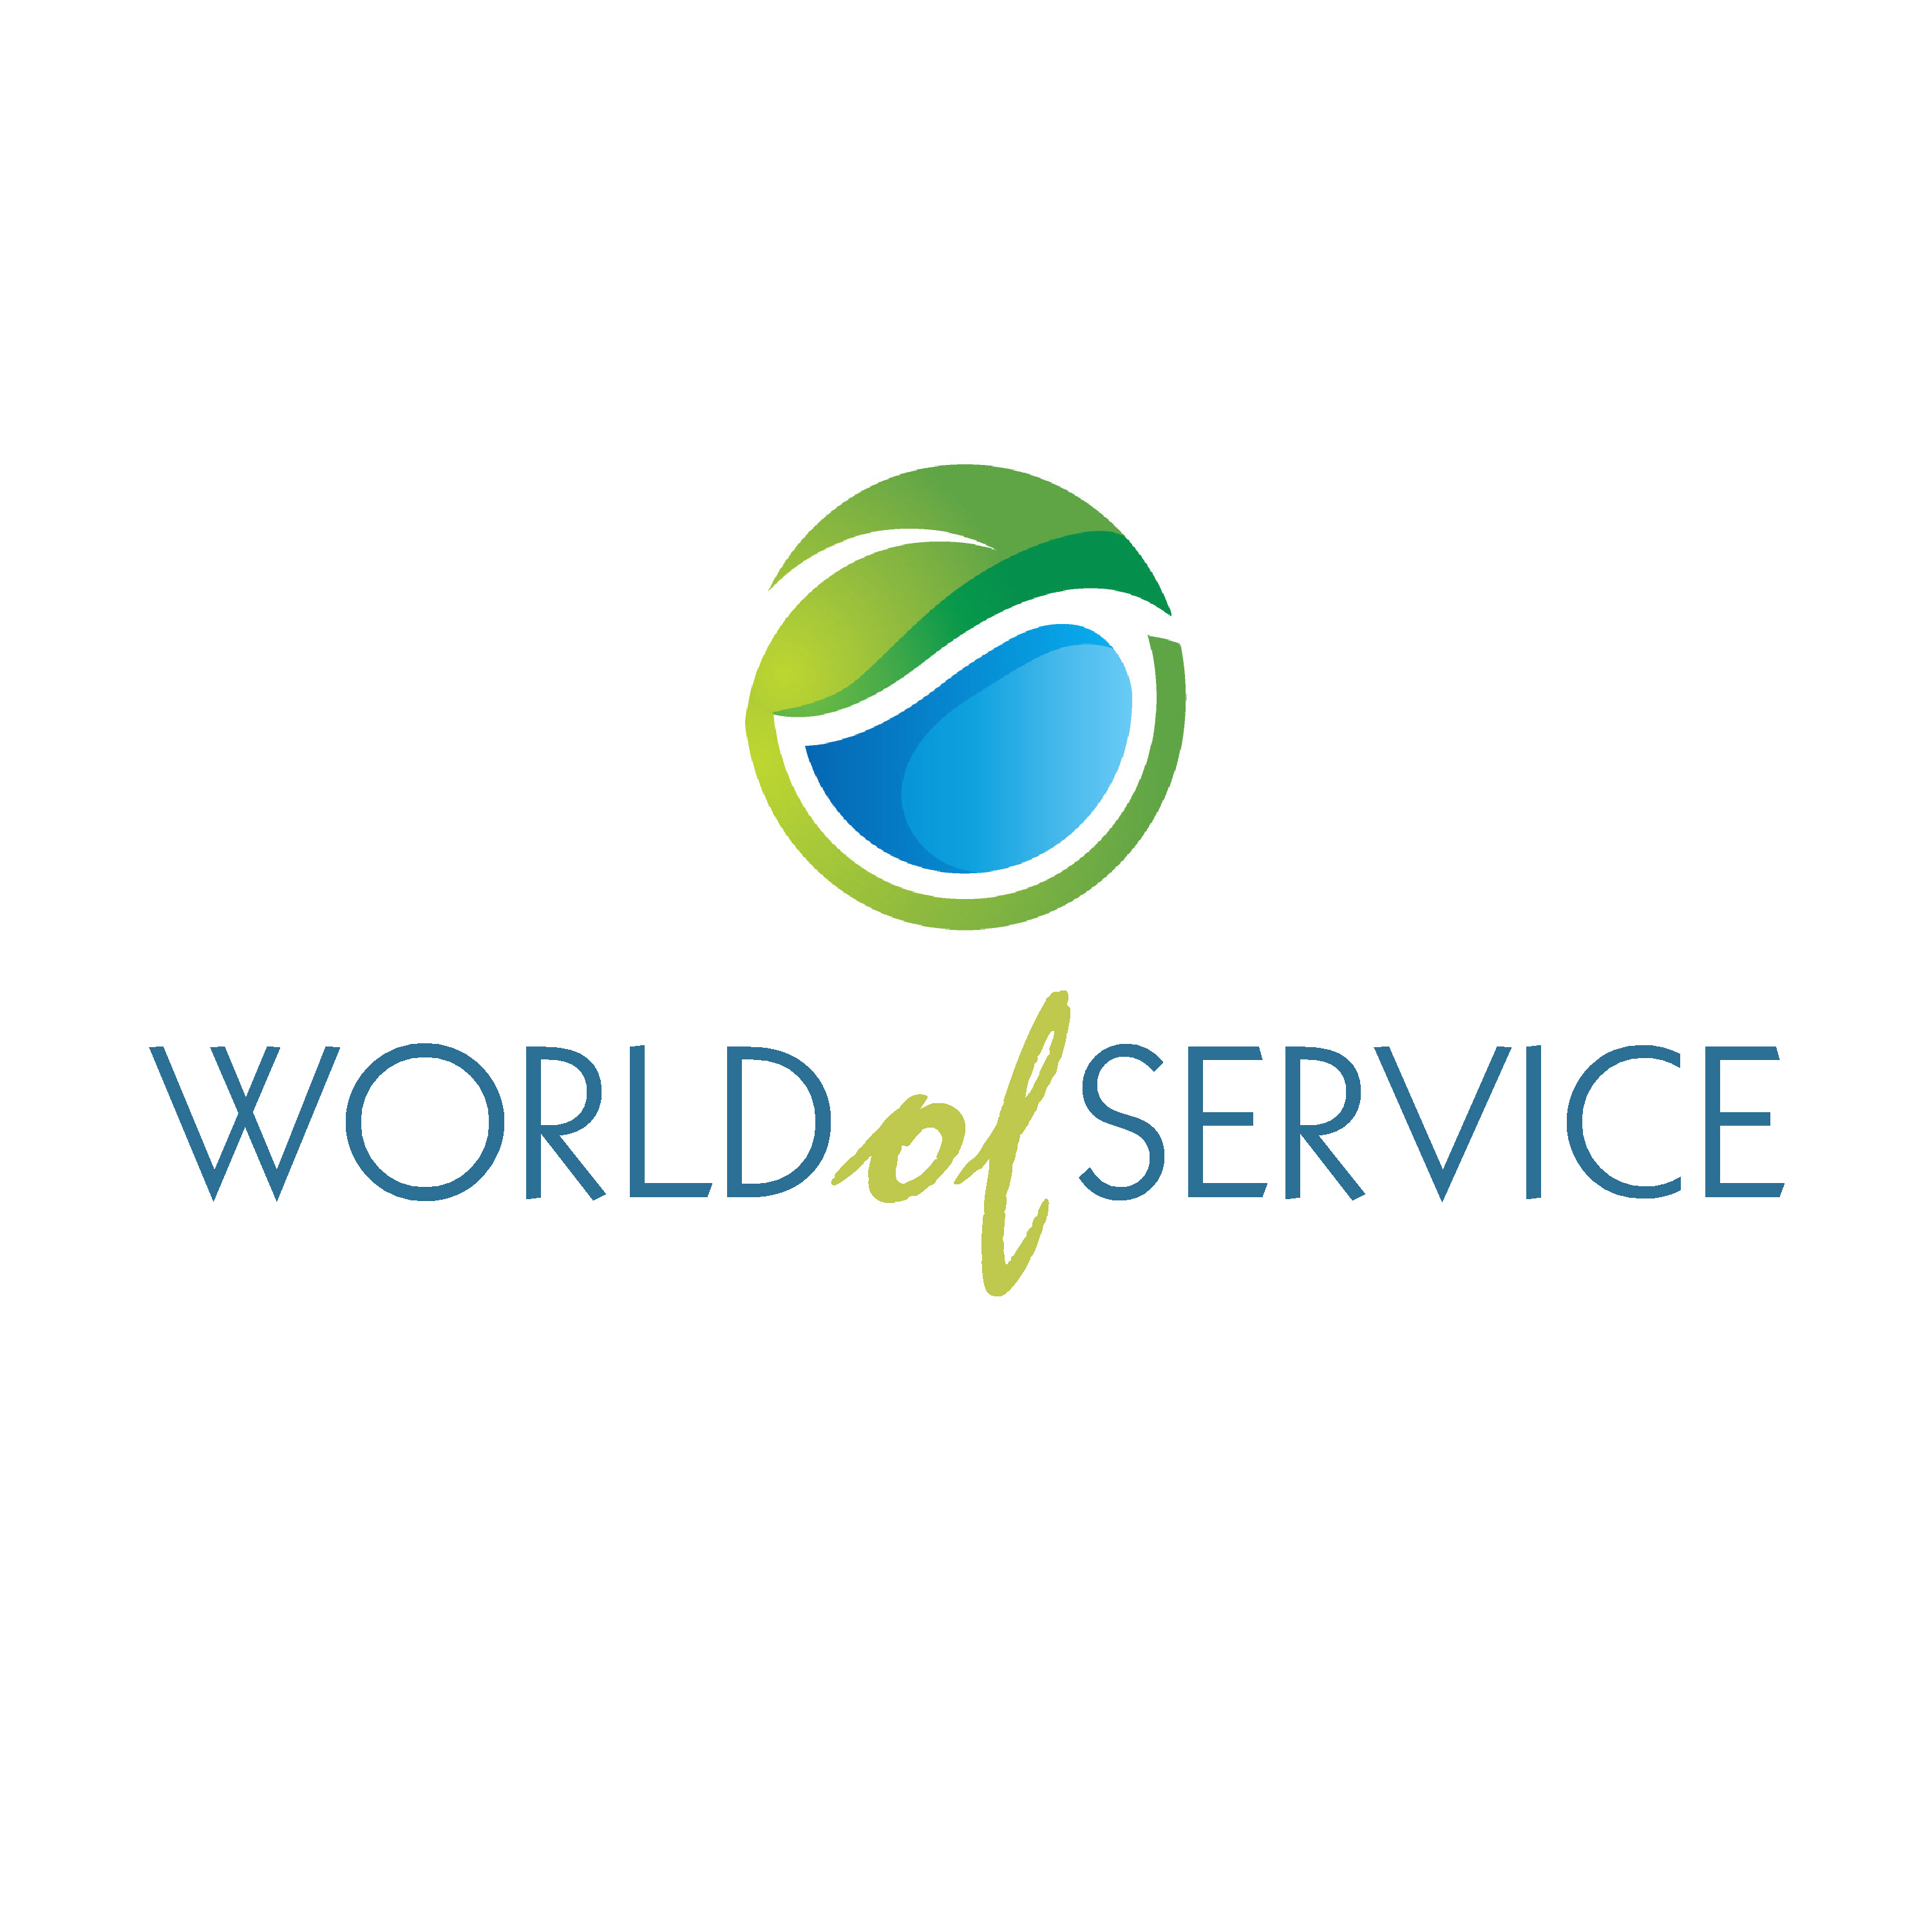 WORLD OF SERVICE INC.